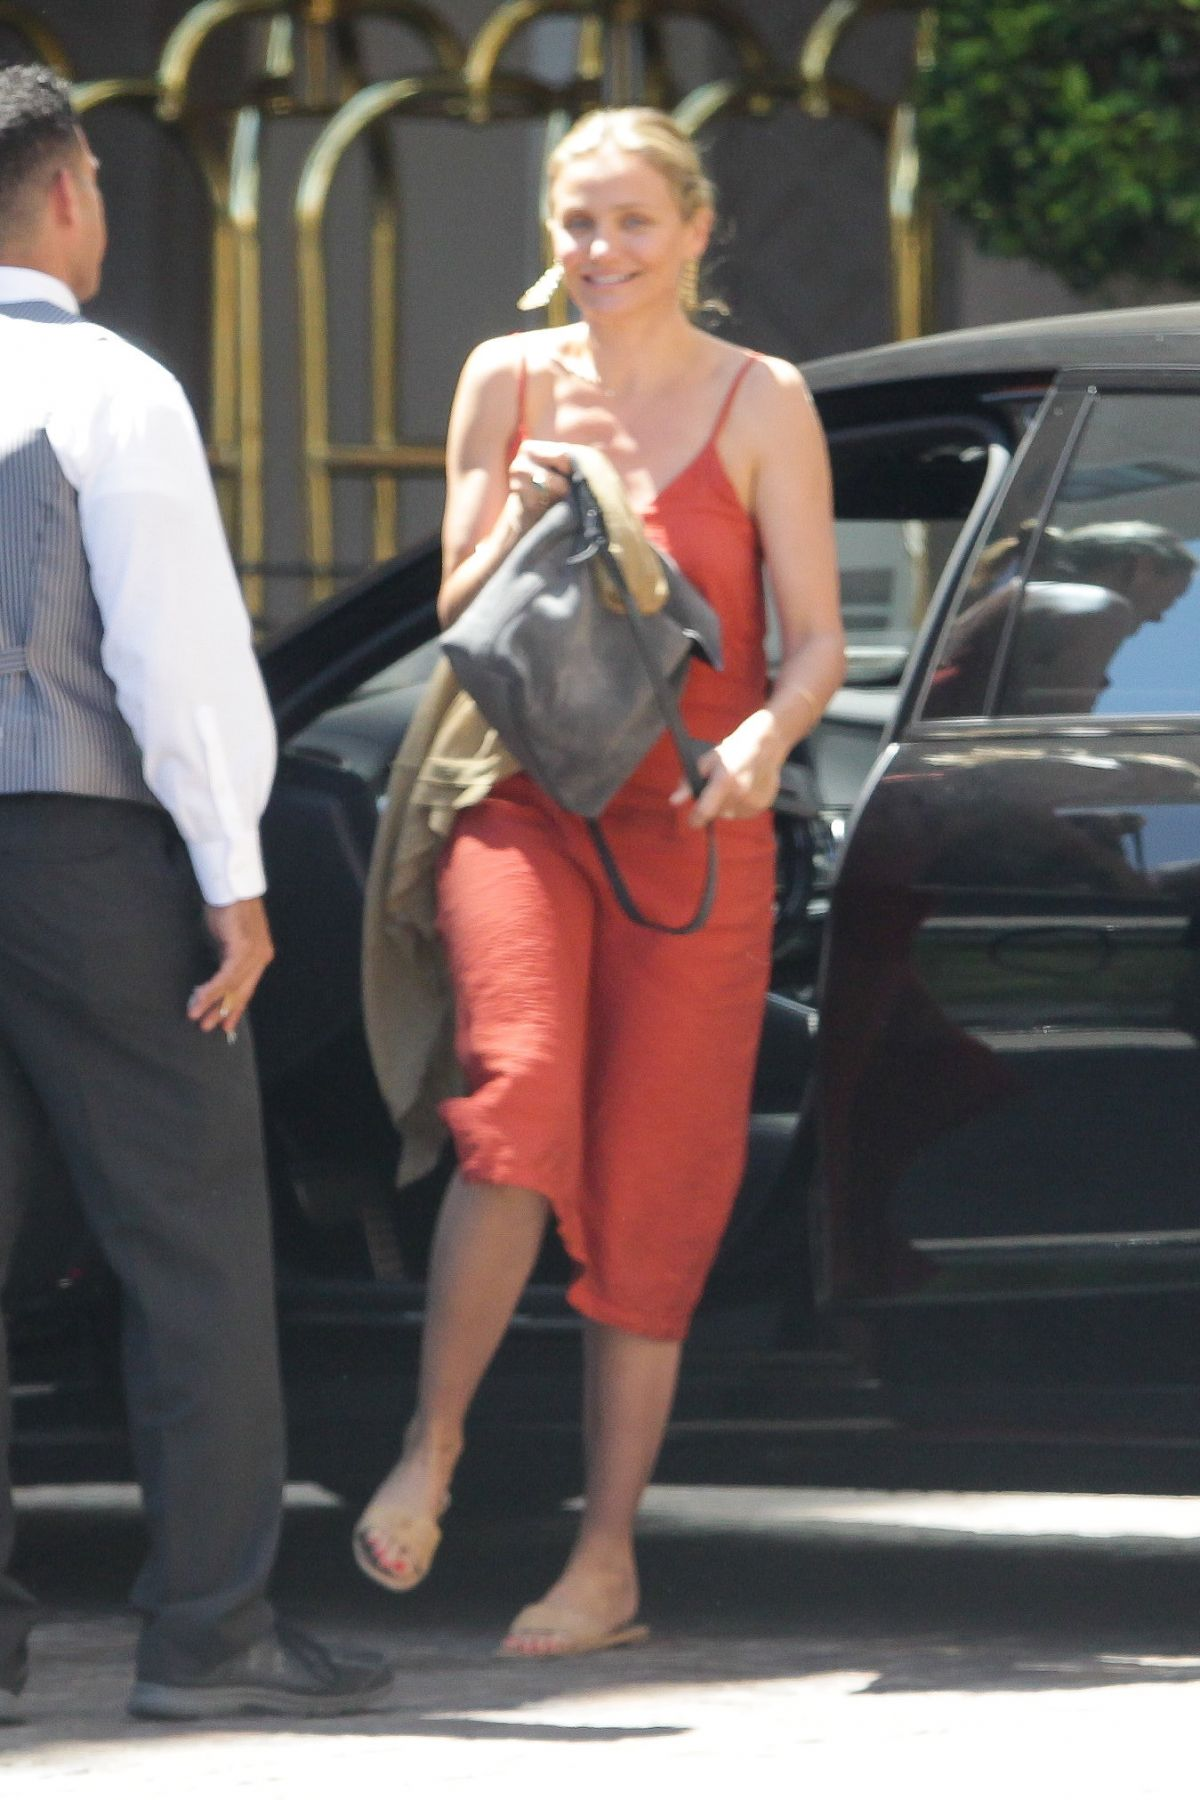 CAMERON DIAZ Arrives at a Hotel in Beverly Hills 08/15/2016